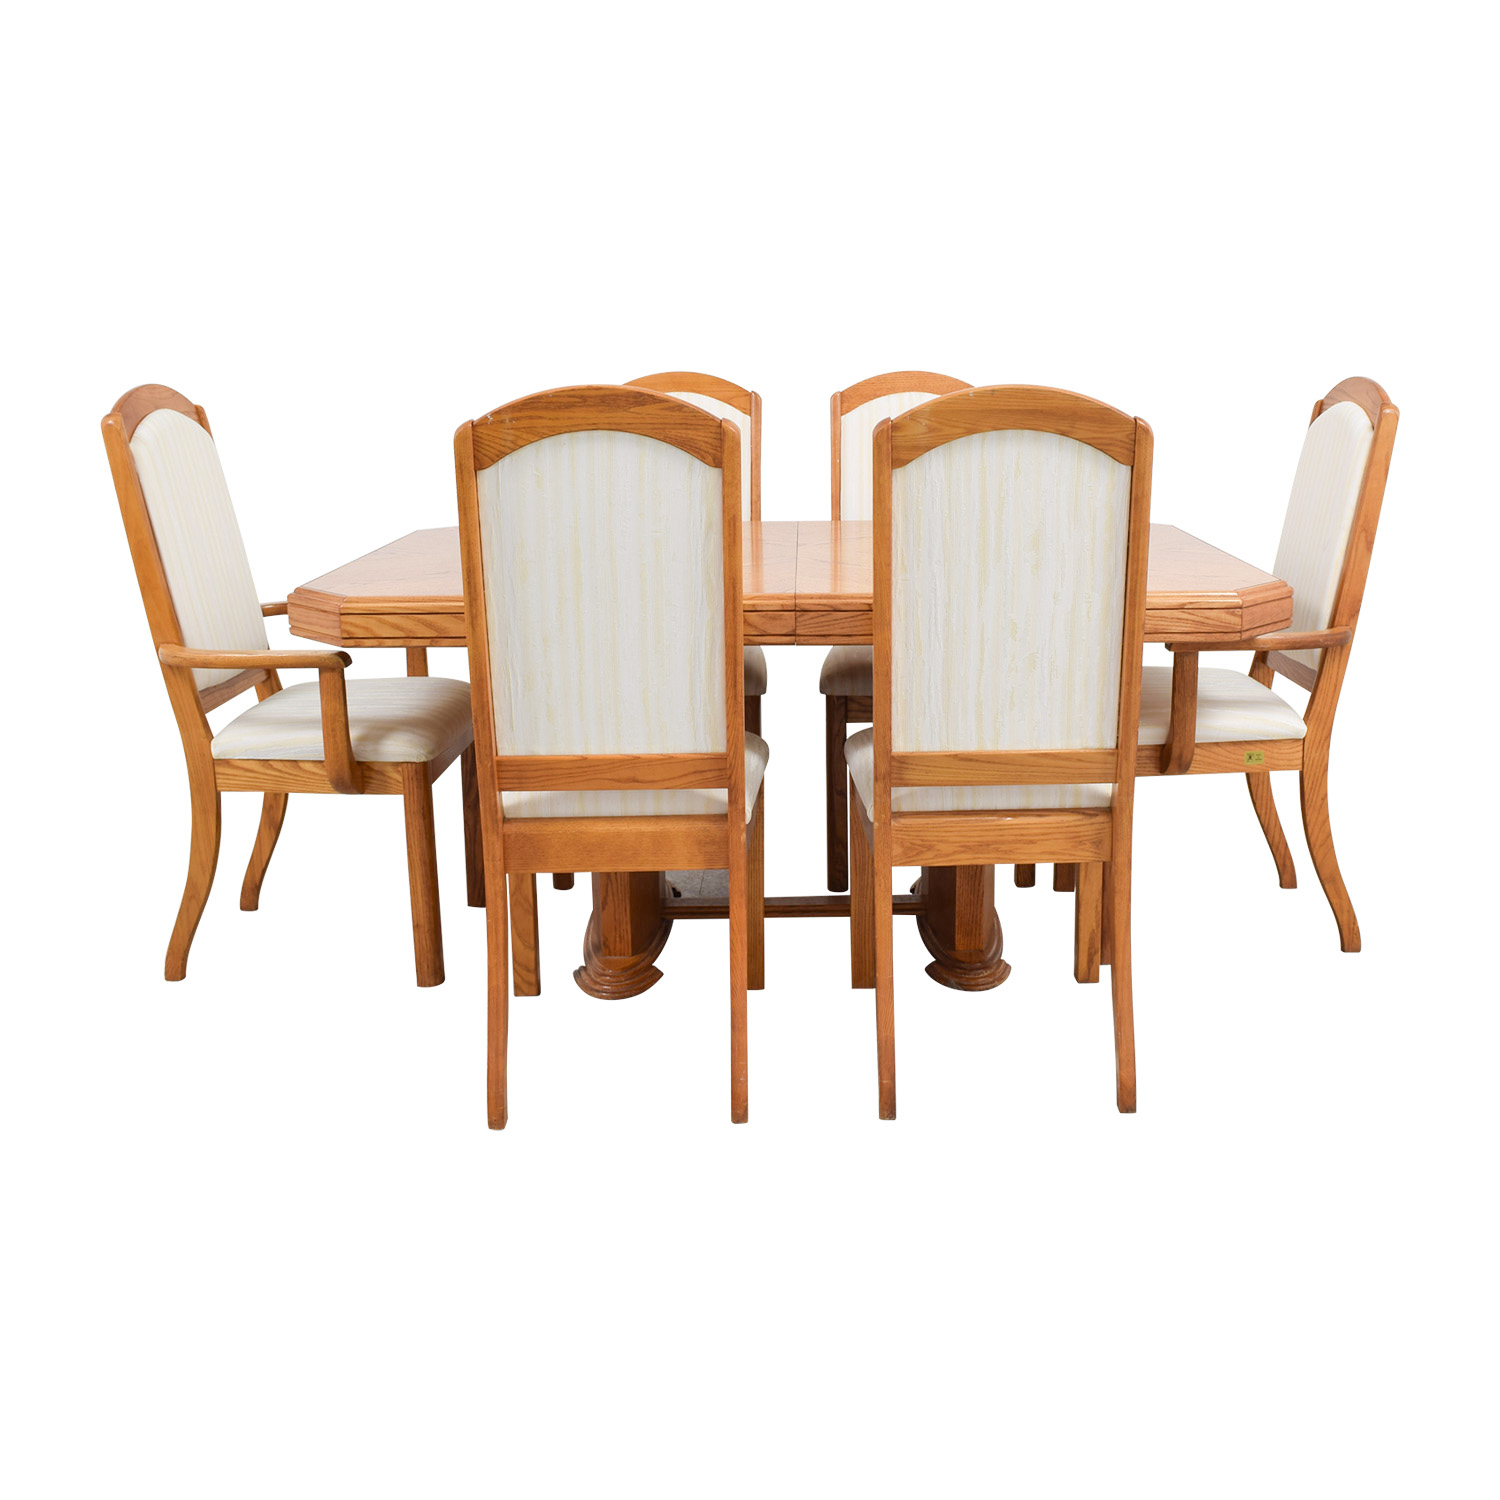 upholstered extending fishpools room and chair limoges dining table chairs